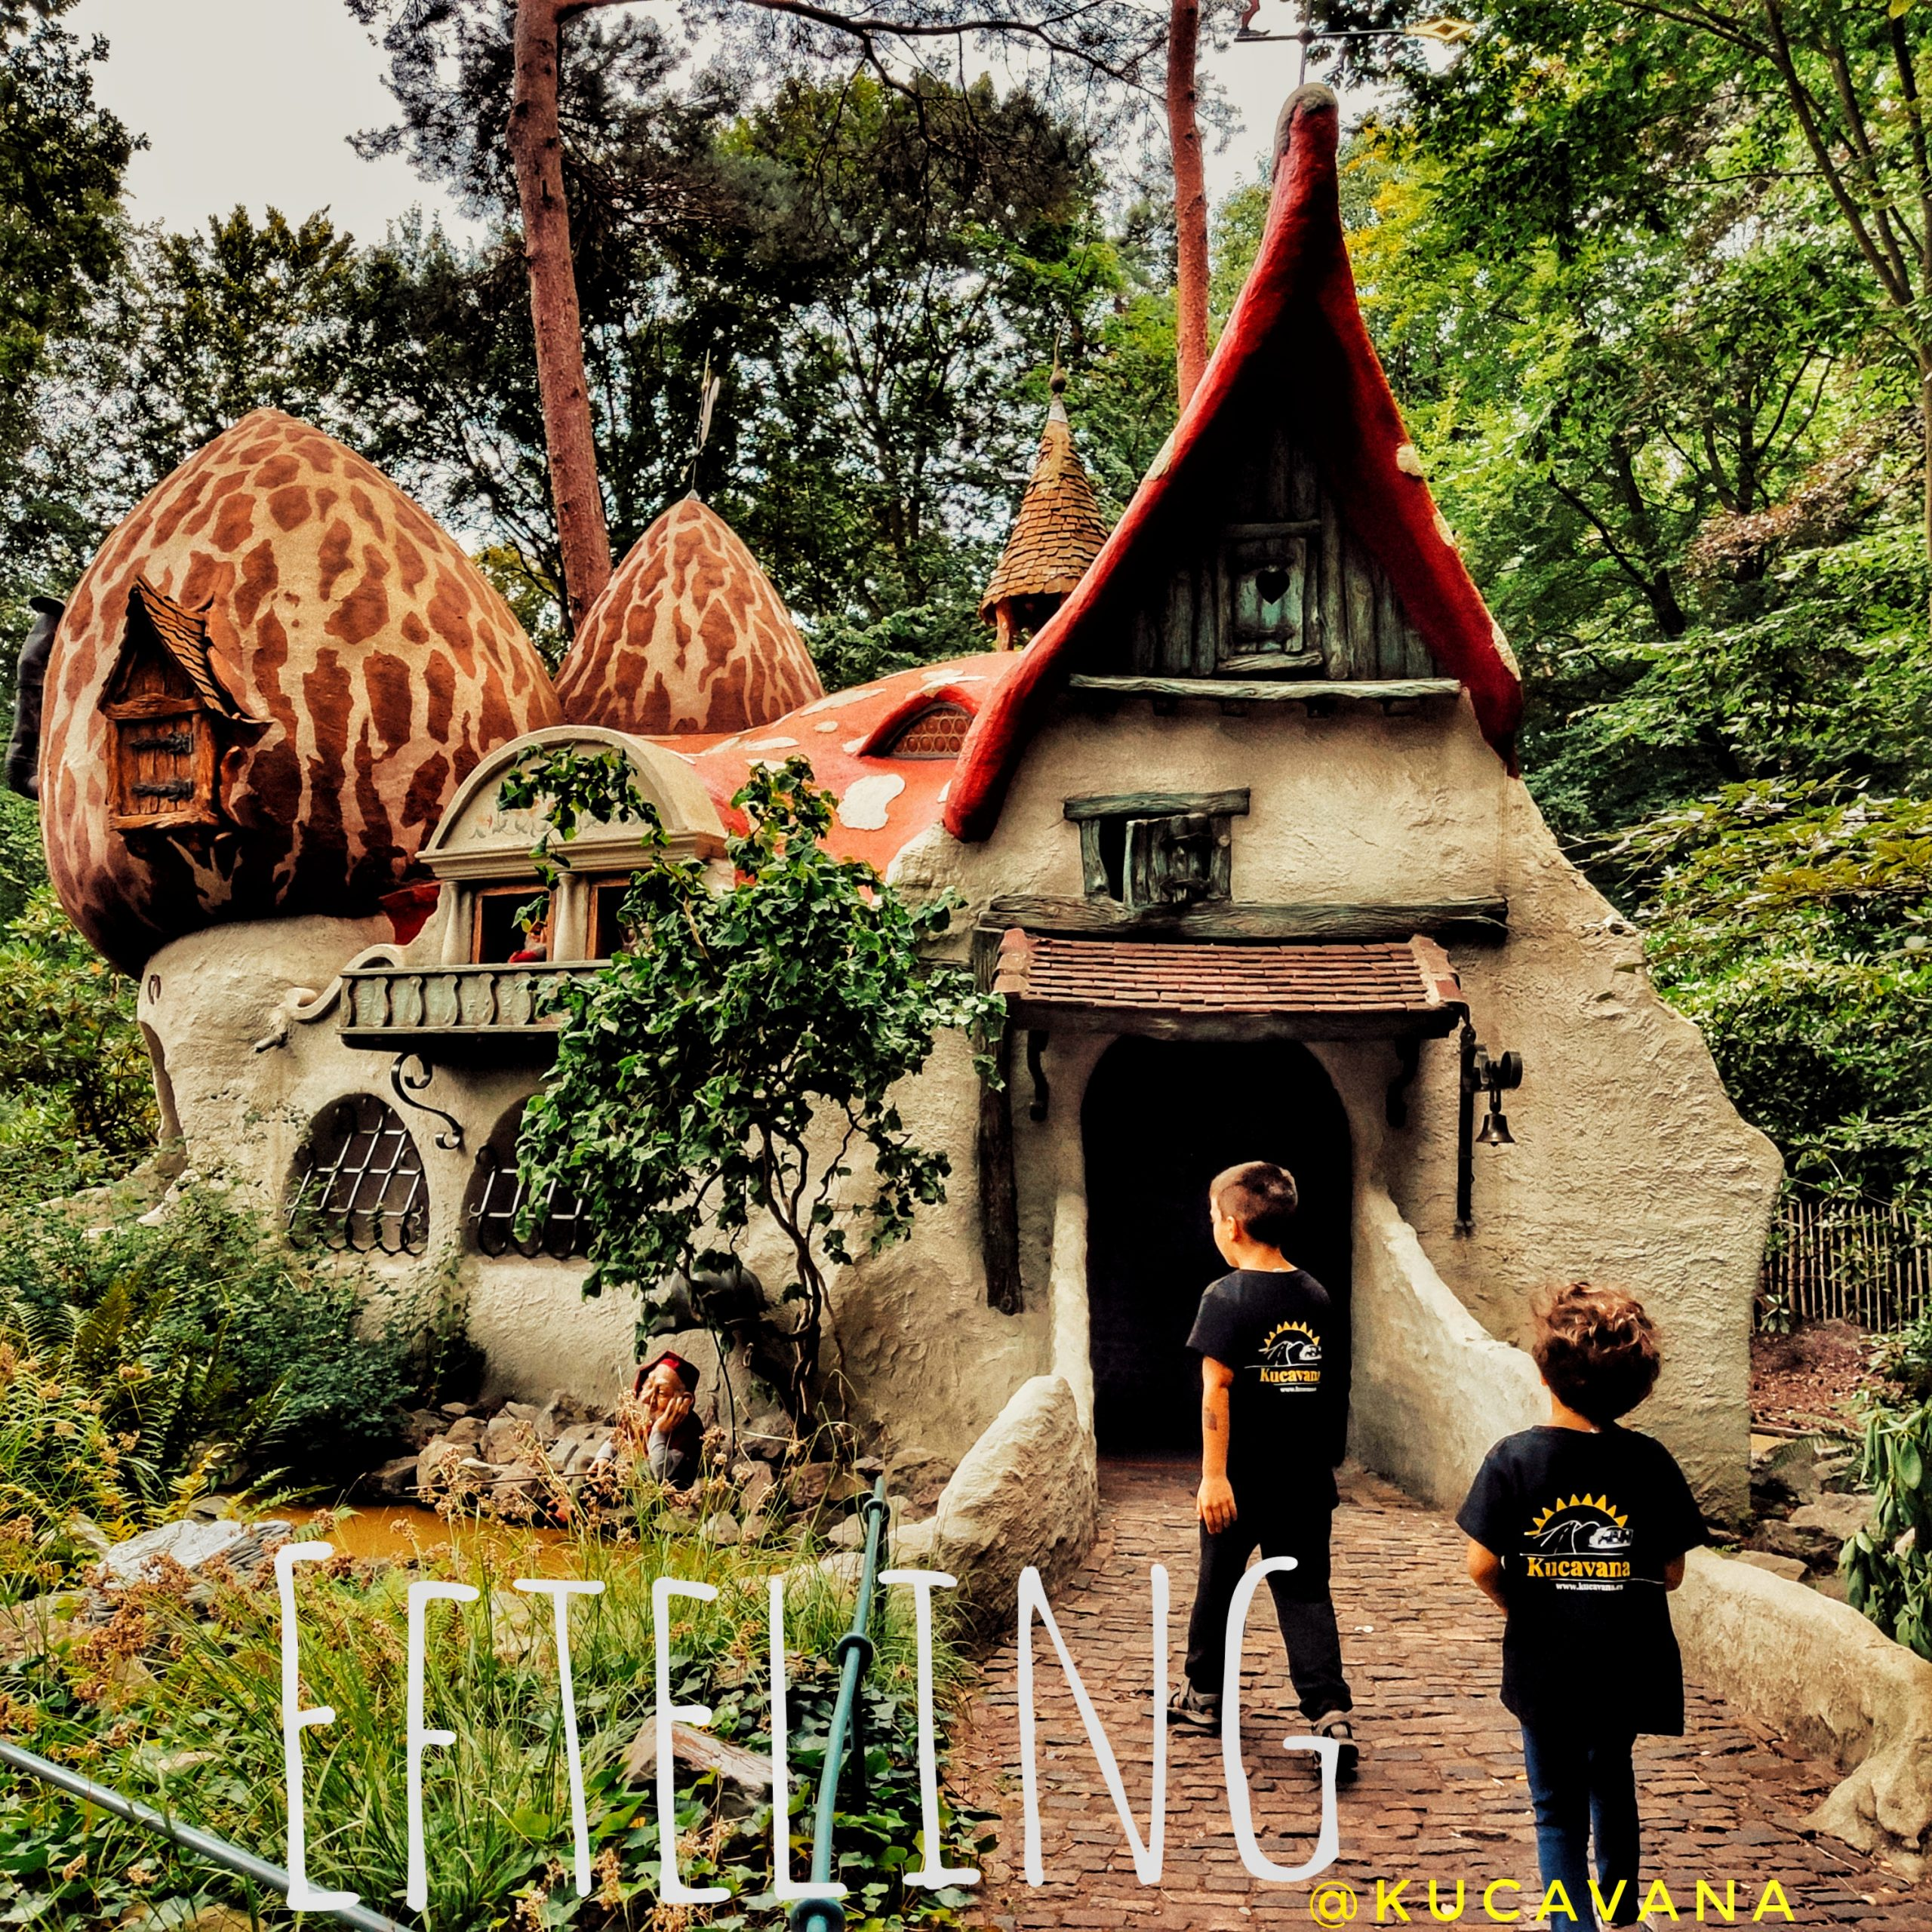 Le meilleur parc d'attractions de Hollande et le plus ancien d'Europe: Efteling